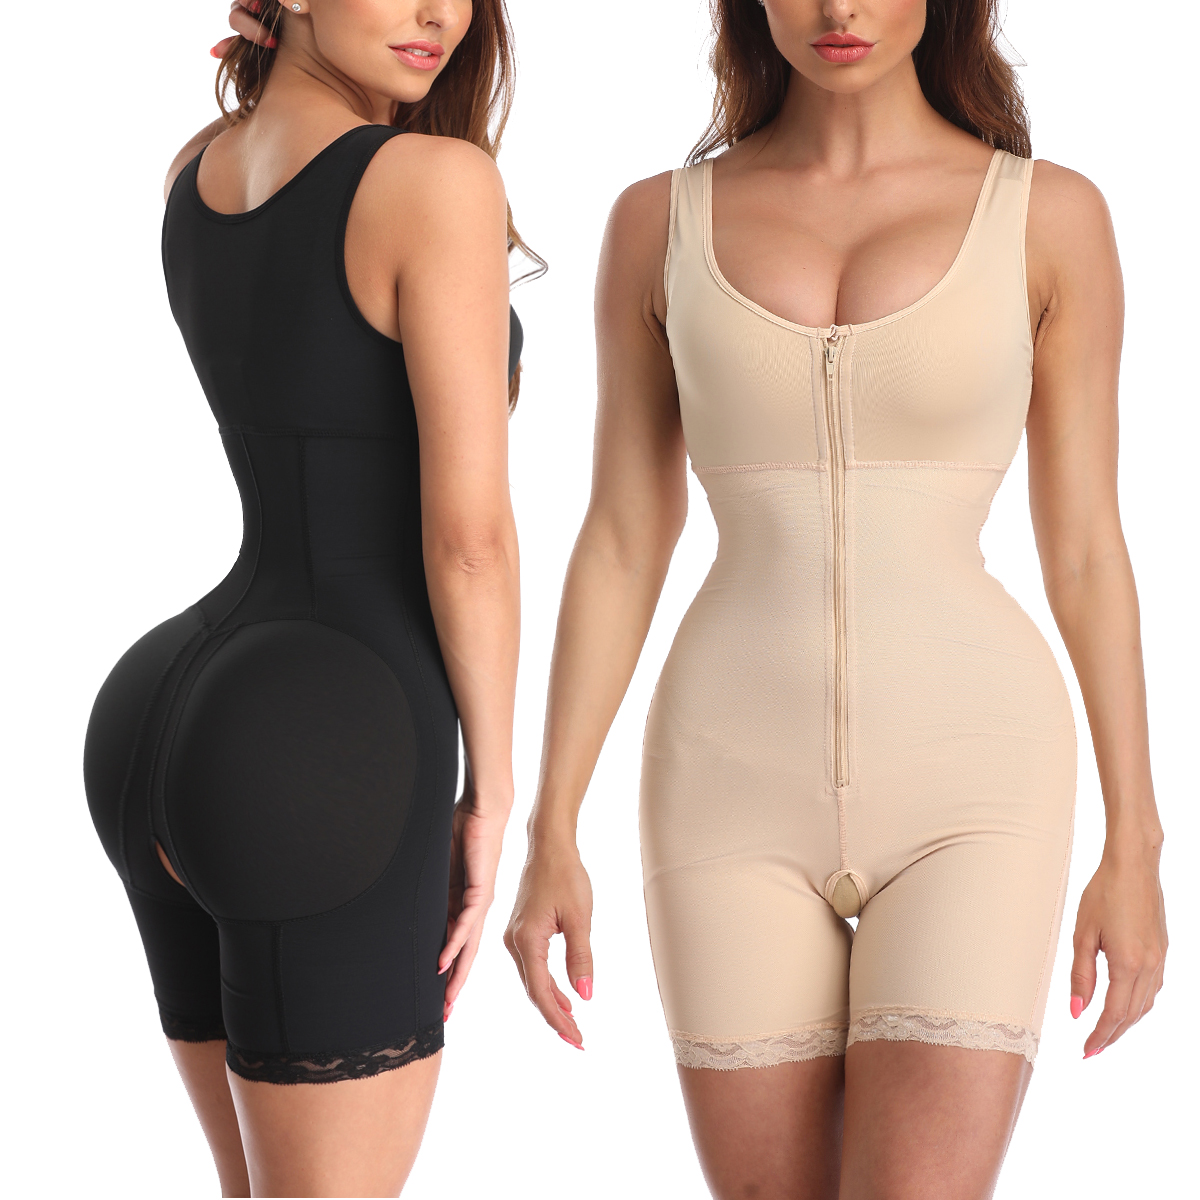 2018 Trendy Tummy Control Shapewear Body Shaper Factory Directly With OEM Service